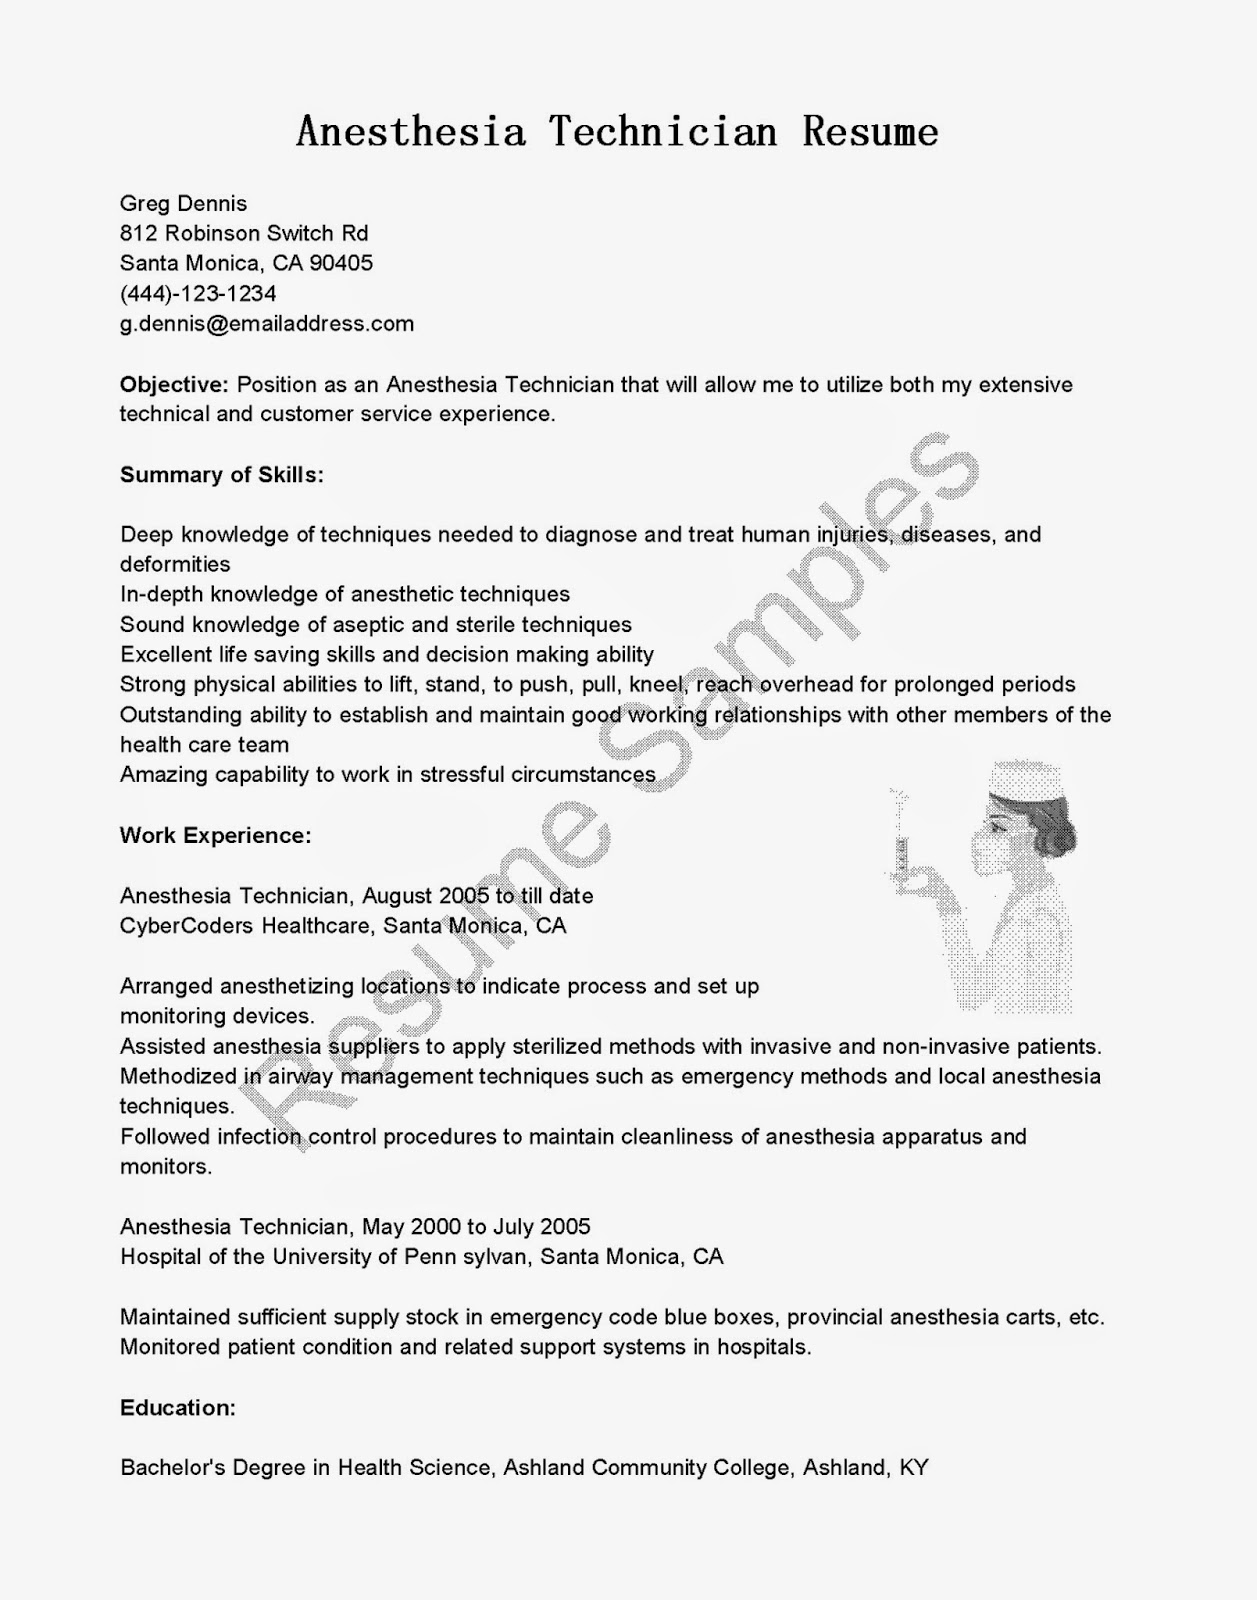 general technician resume college veterinary medicine cornell university sample resumes resume tips curriculum vitae cvs writing a cv sample